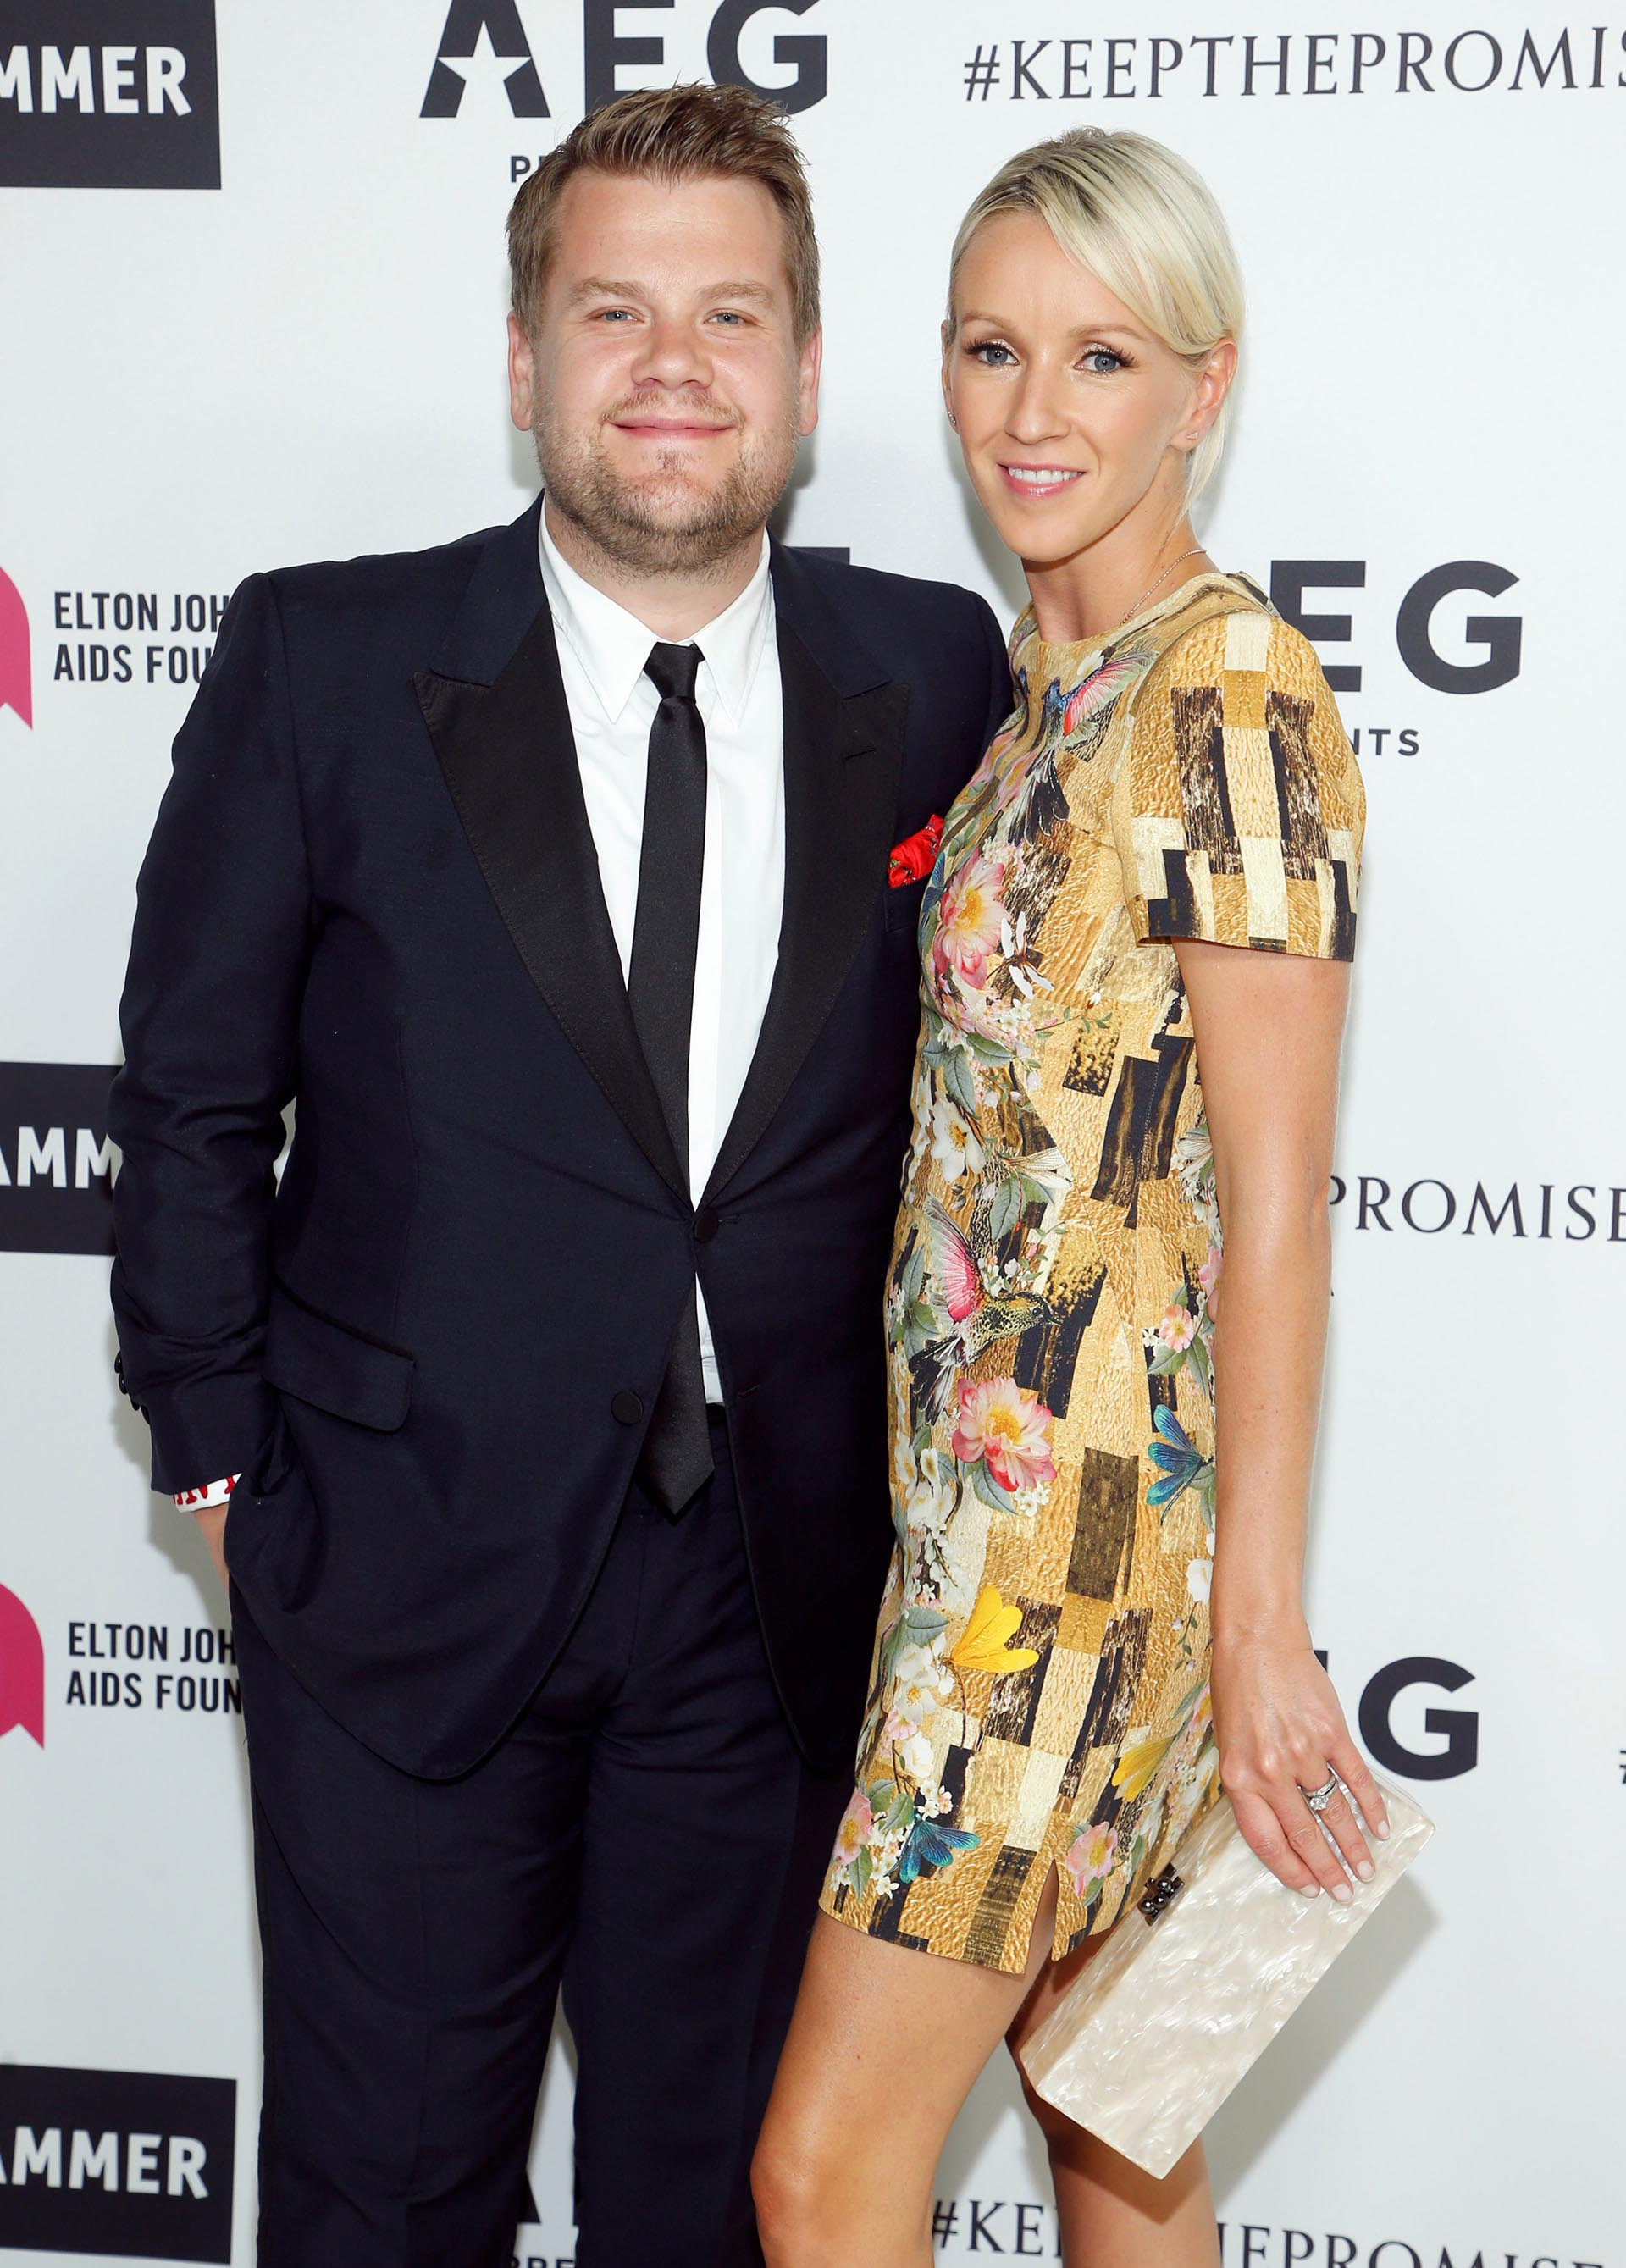 James Corden- Julia Carey